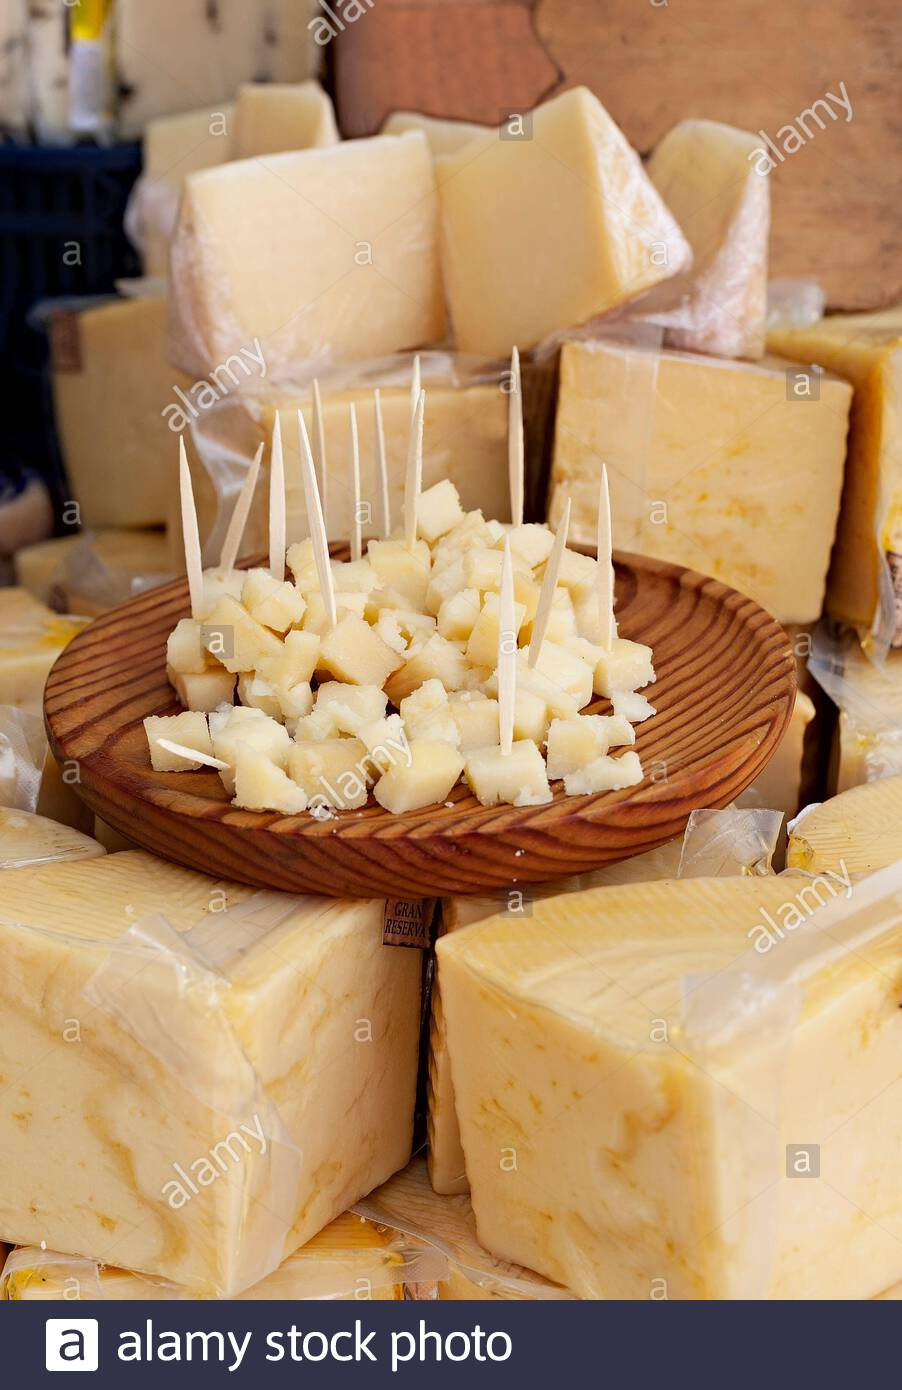 Sale of cheese in a market and a plate to try the product for free. Food. Stock Photo